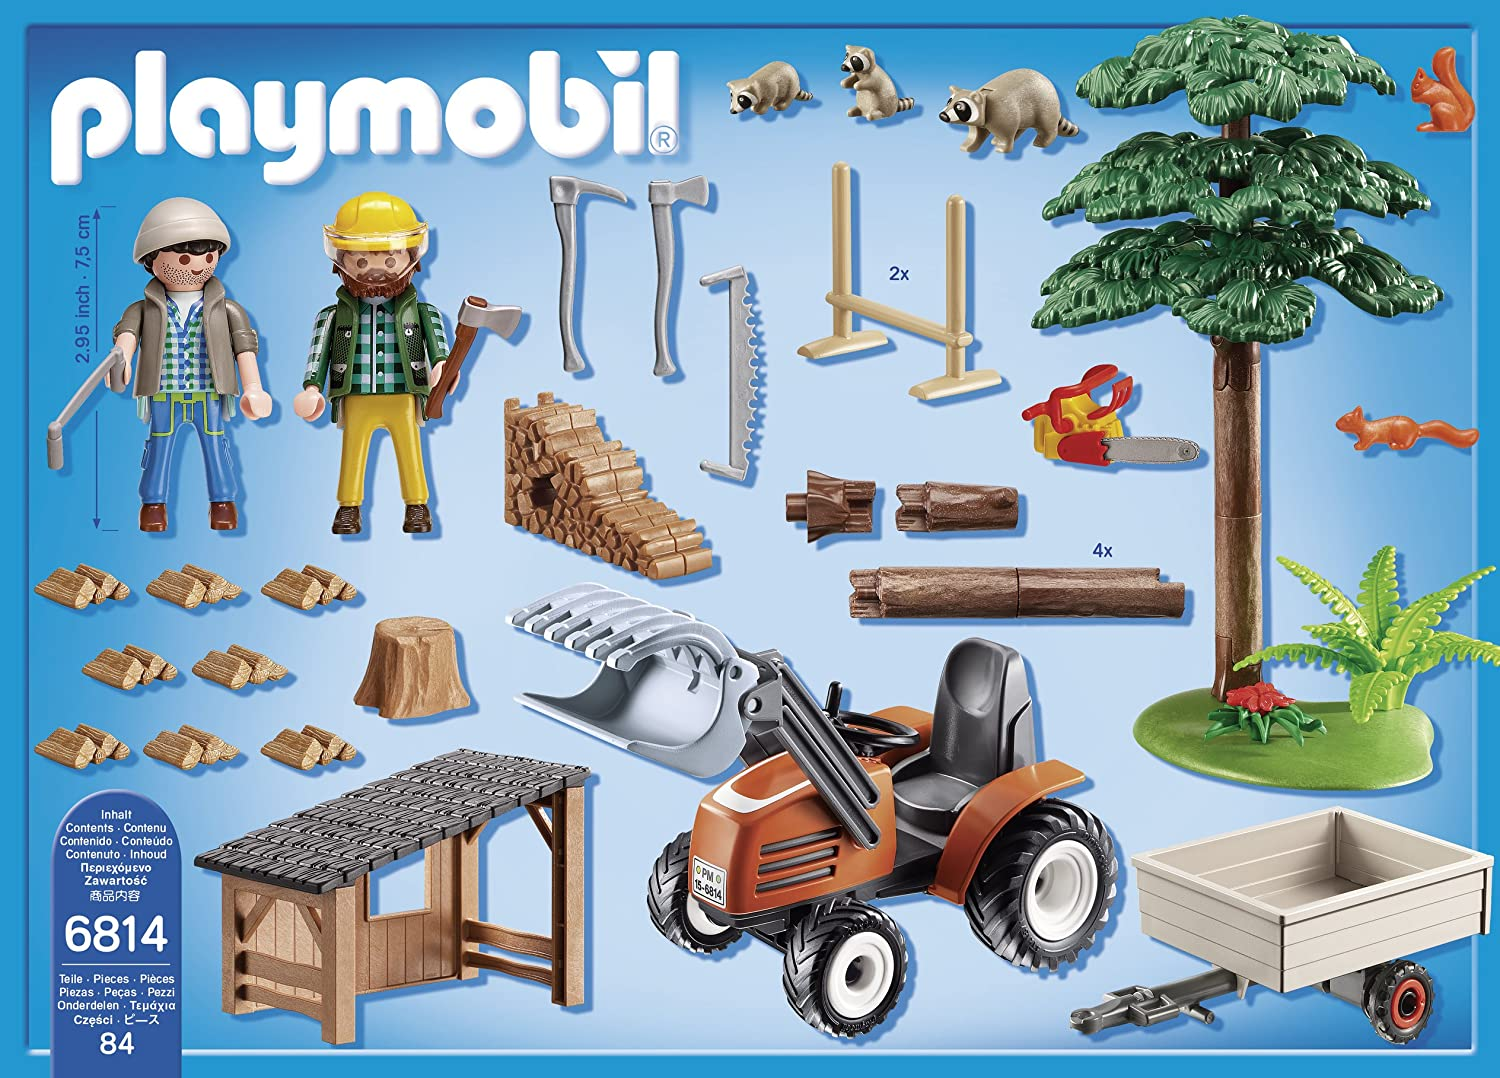 Playmobil 6814 Country Lumber Yard with Tractor: Amazon.co.uk: Toys & Games